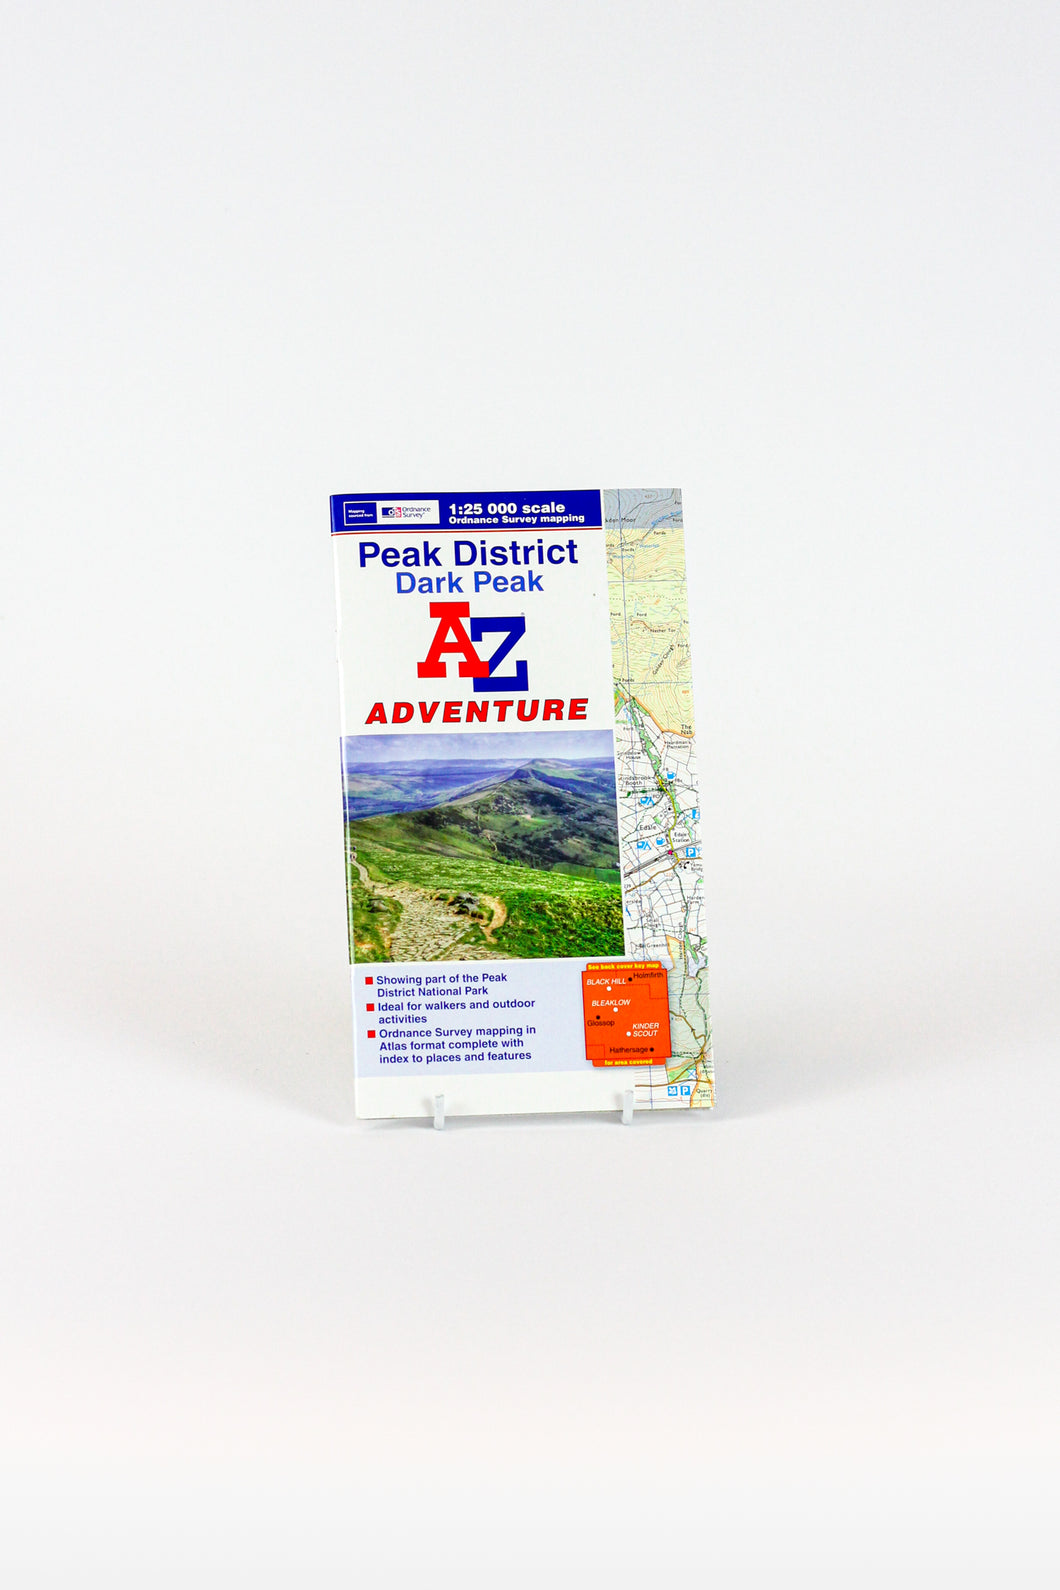 A-Z Adventure Atlas of the Peak District  -  Dark Peak